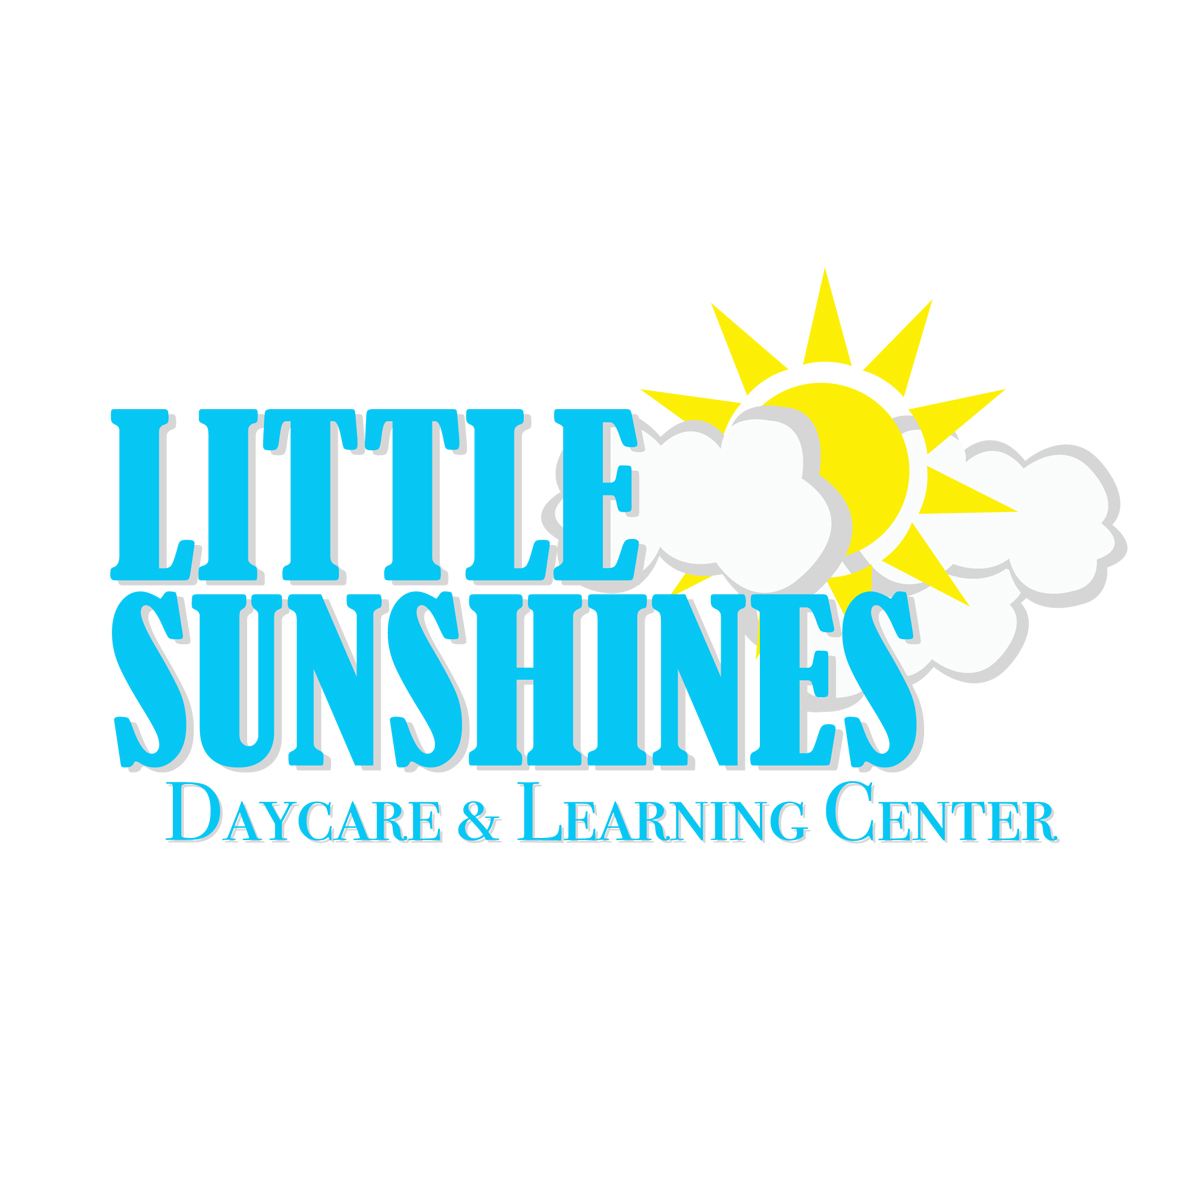 Little Sunshines Daycare & Learning Center